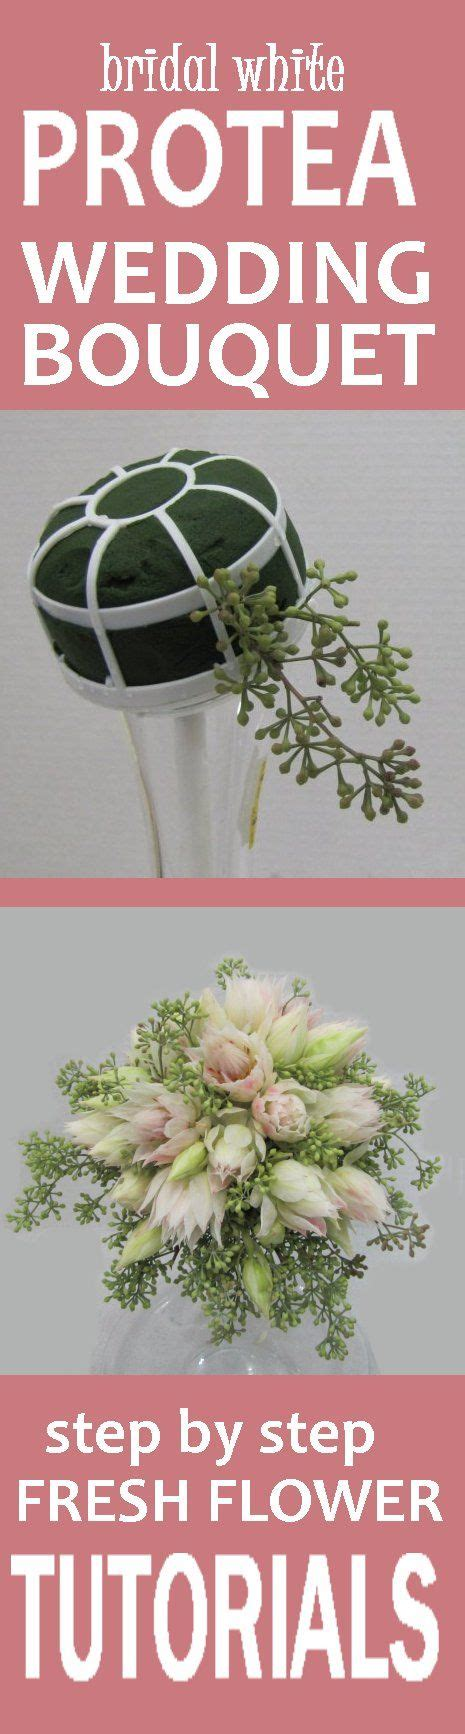 Bridal Bouquet Prices by 1000 Images About How To Make A Wedding Bouquet On